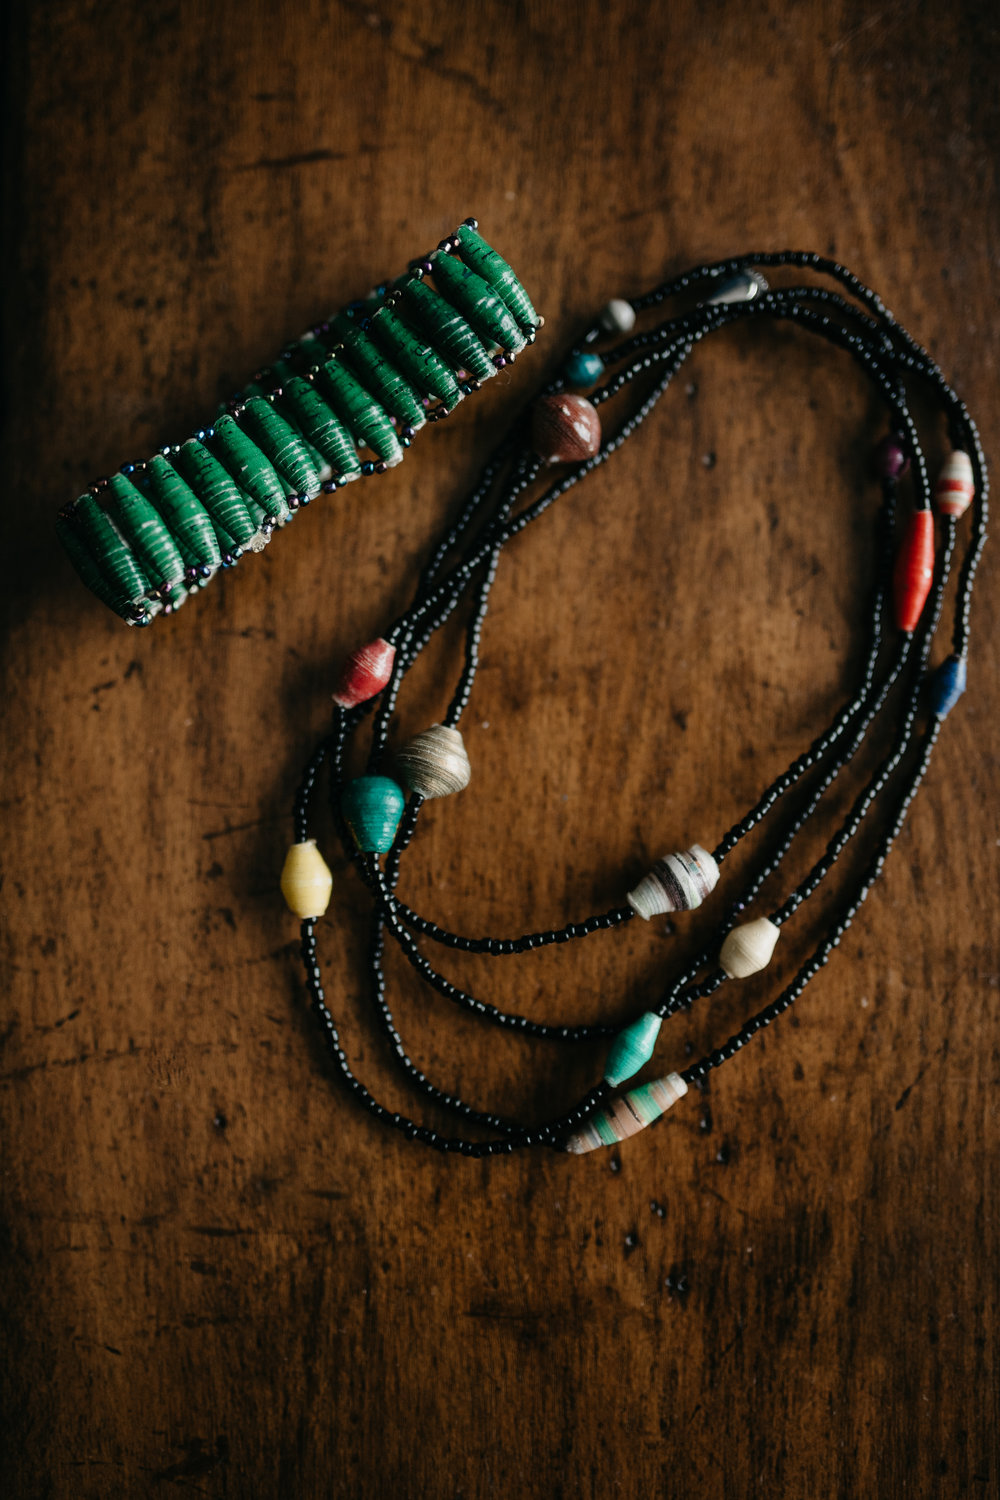 Day 1: Win a handmade necklace and bracelet from Lot2545! Each piece of jewelry is designed and made by women entrepreneurs in Kampala, Uganda.